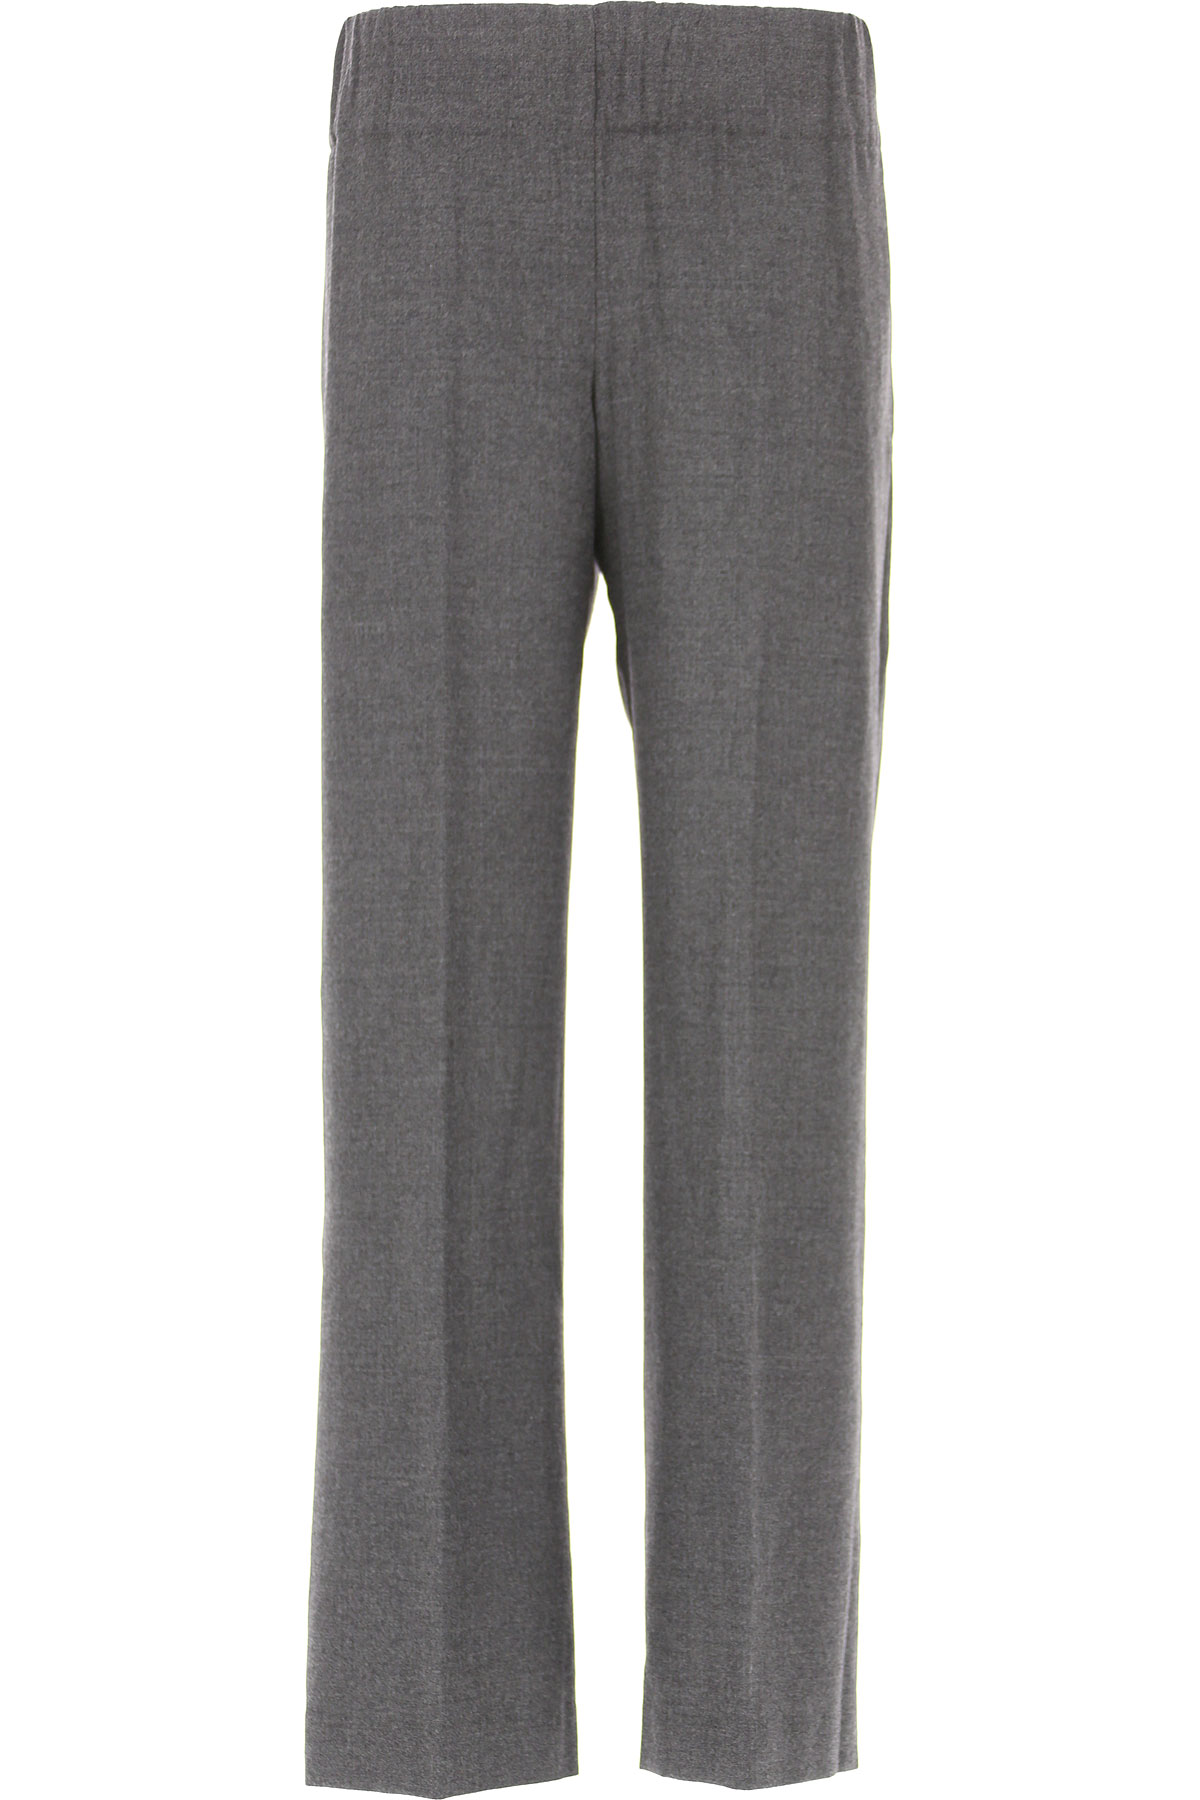 Image of Aspesi Pants for Women, antracite, Wool, 2017, 26 30 32